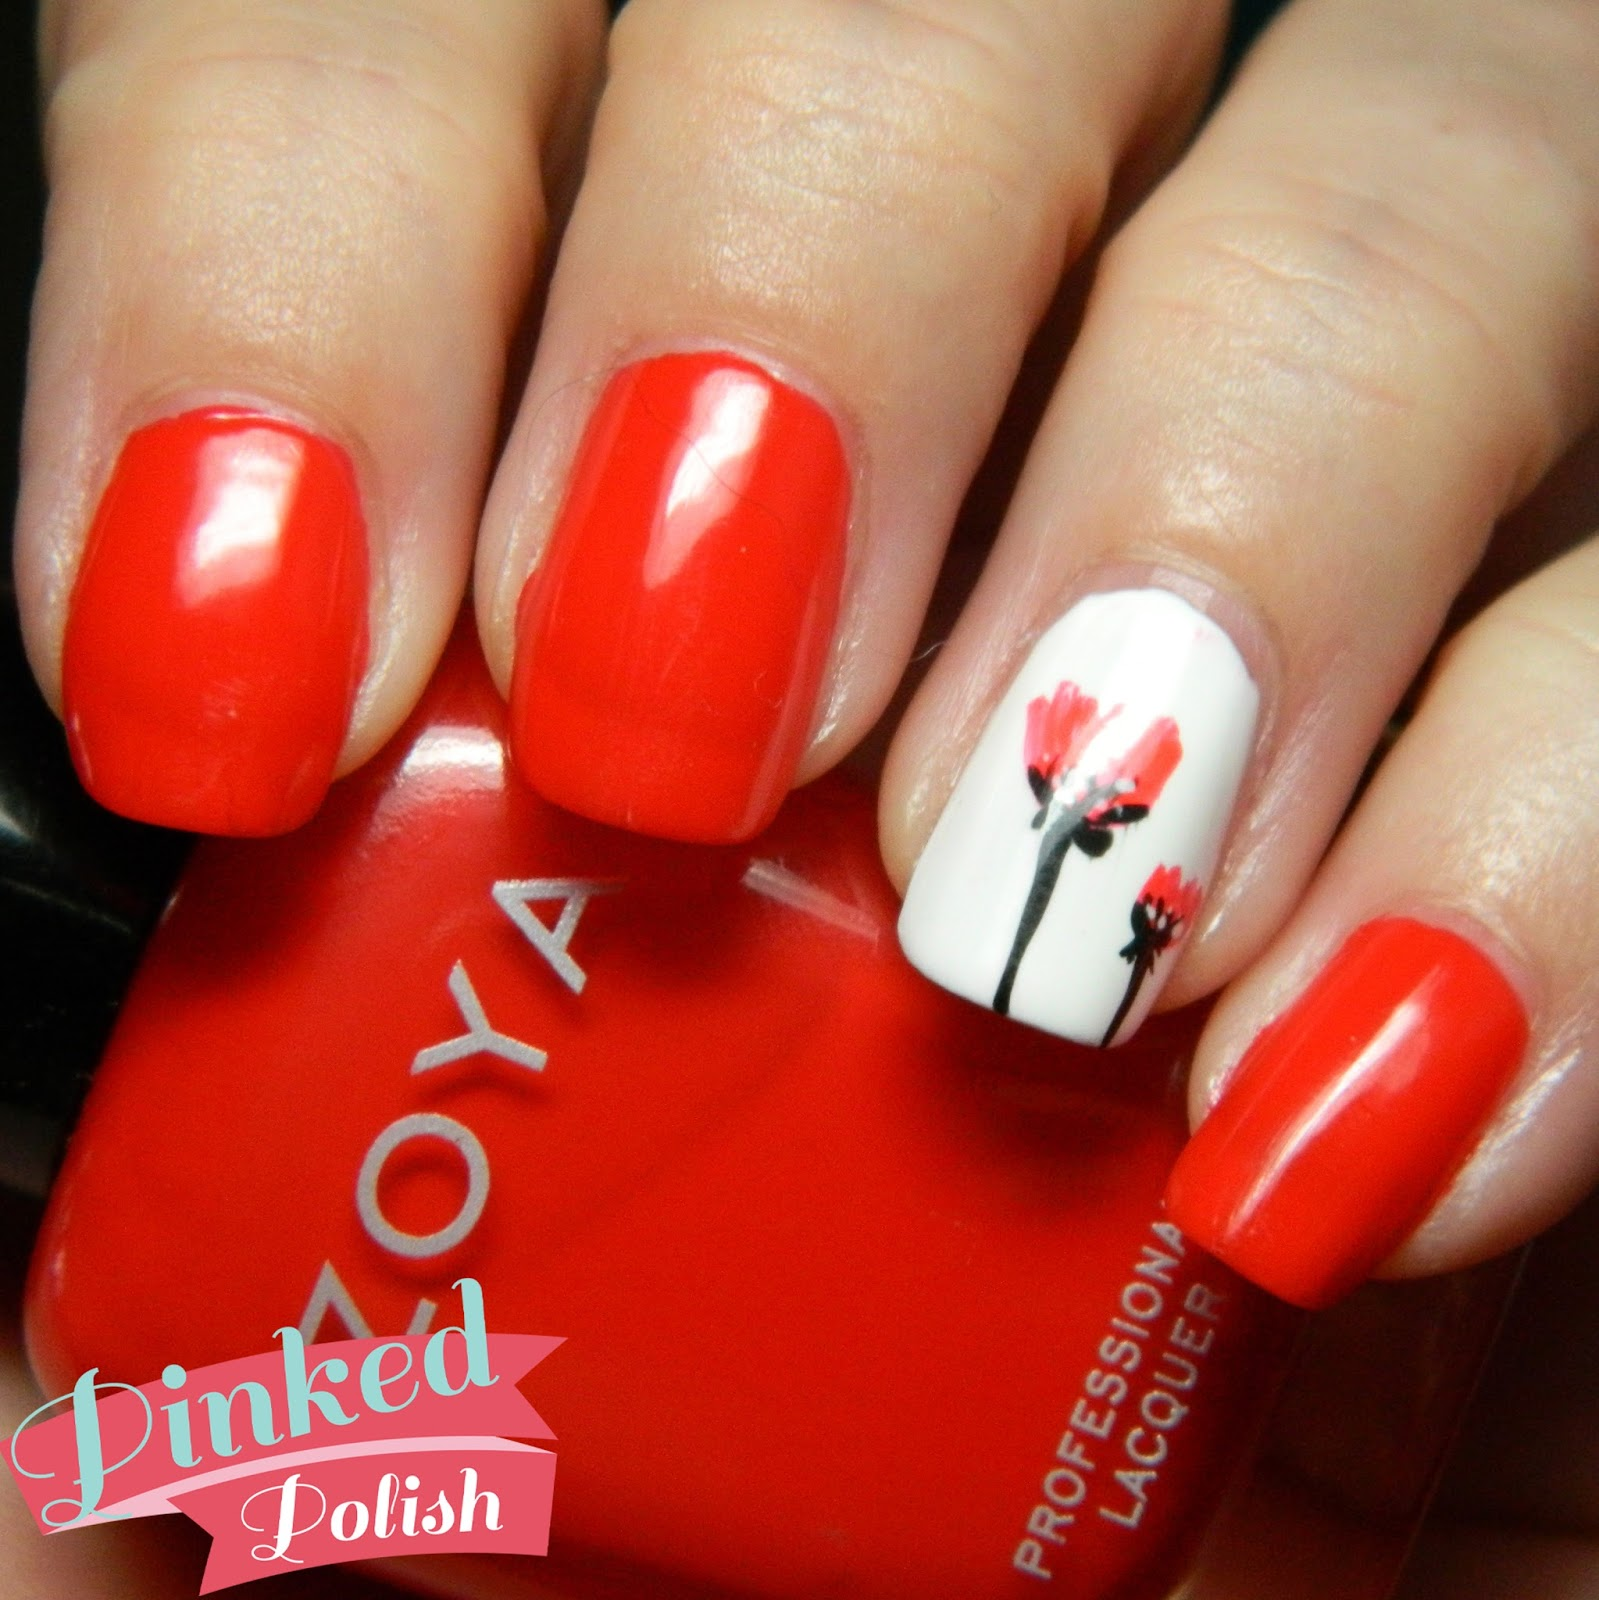 Black Poppy Nail Polish: Pinked Polish: Poppy Accent Nail